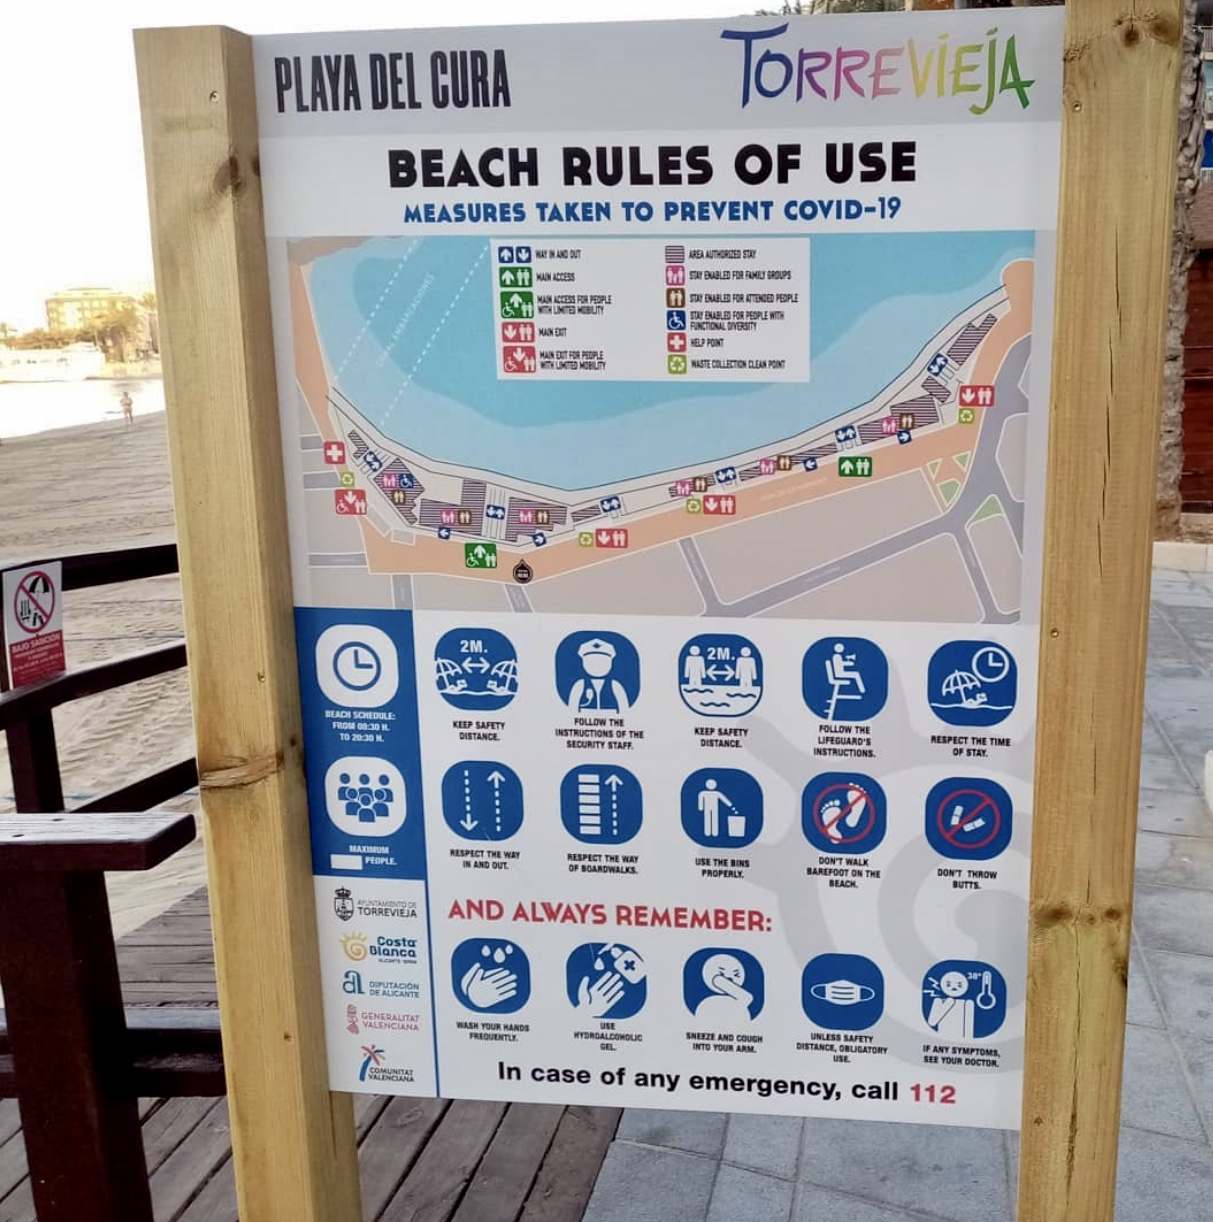 L2F Jul 20 pic Spain reopens beaches Torrevieja sign - English